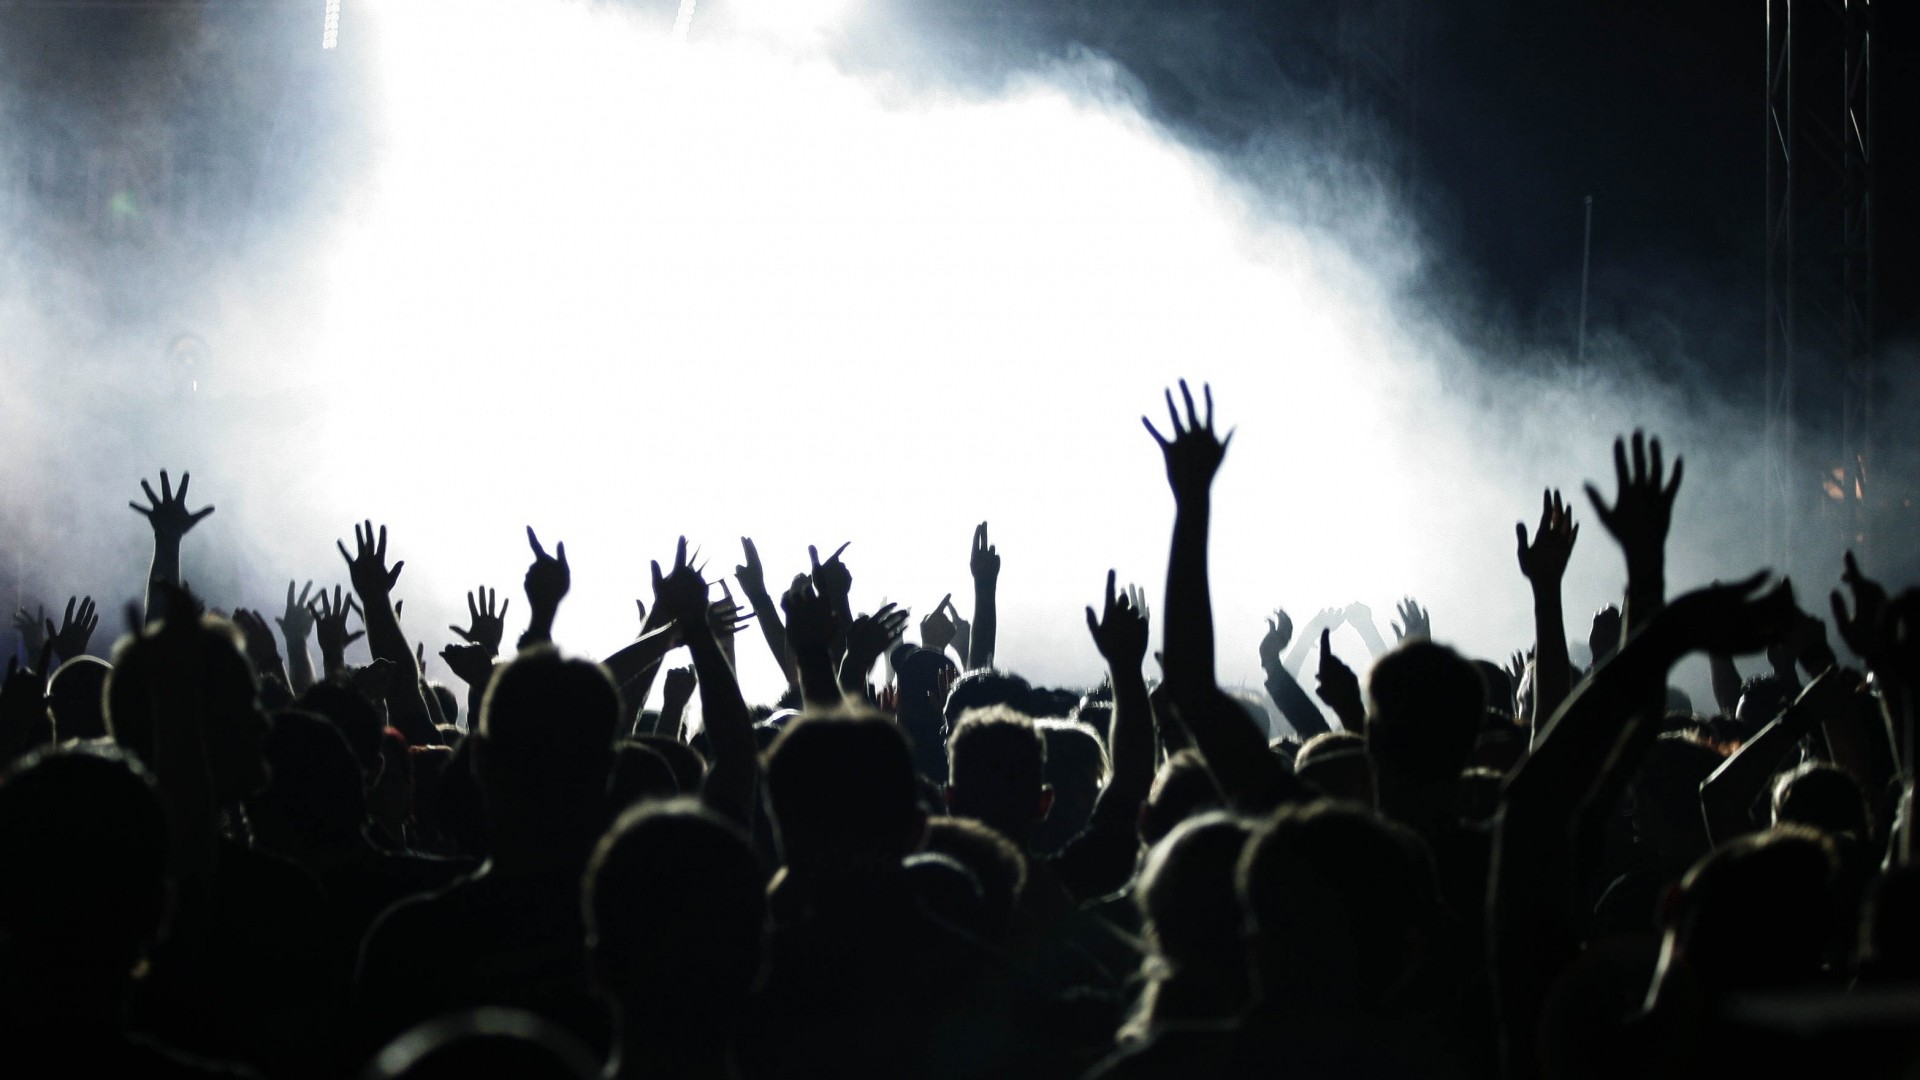 1920x1080  Wallpaper people, hands, concert, music, crowd